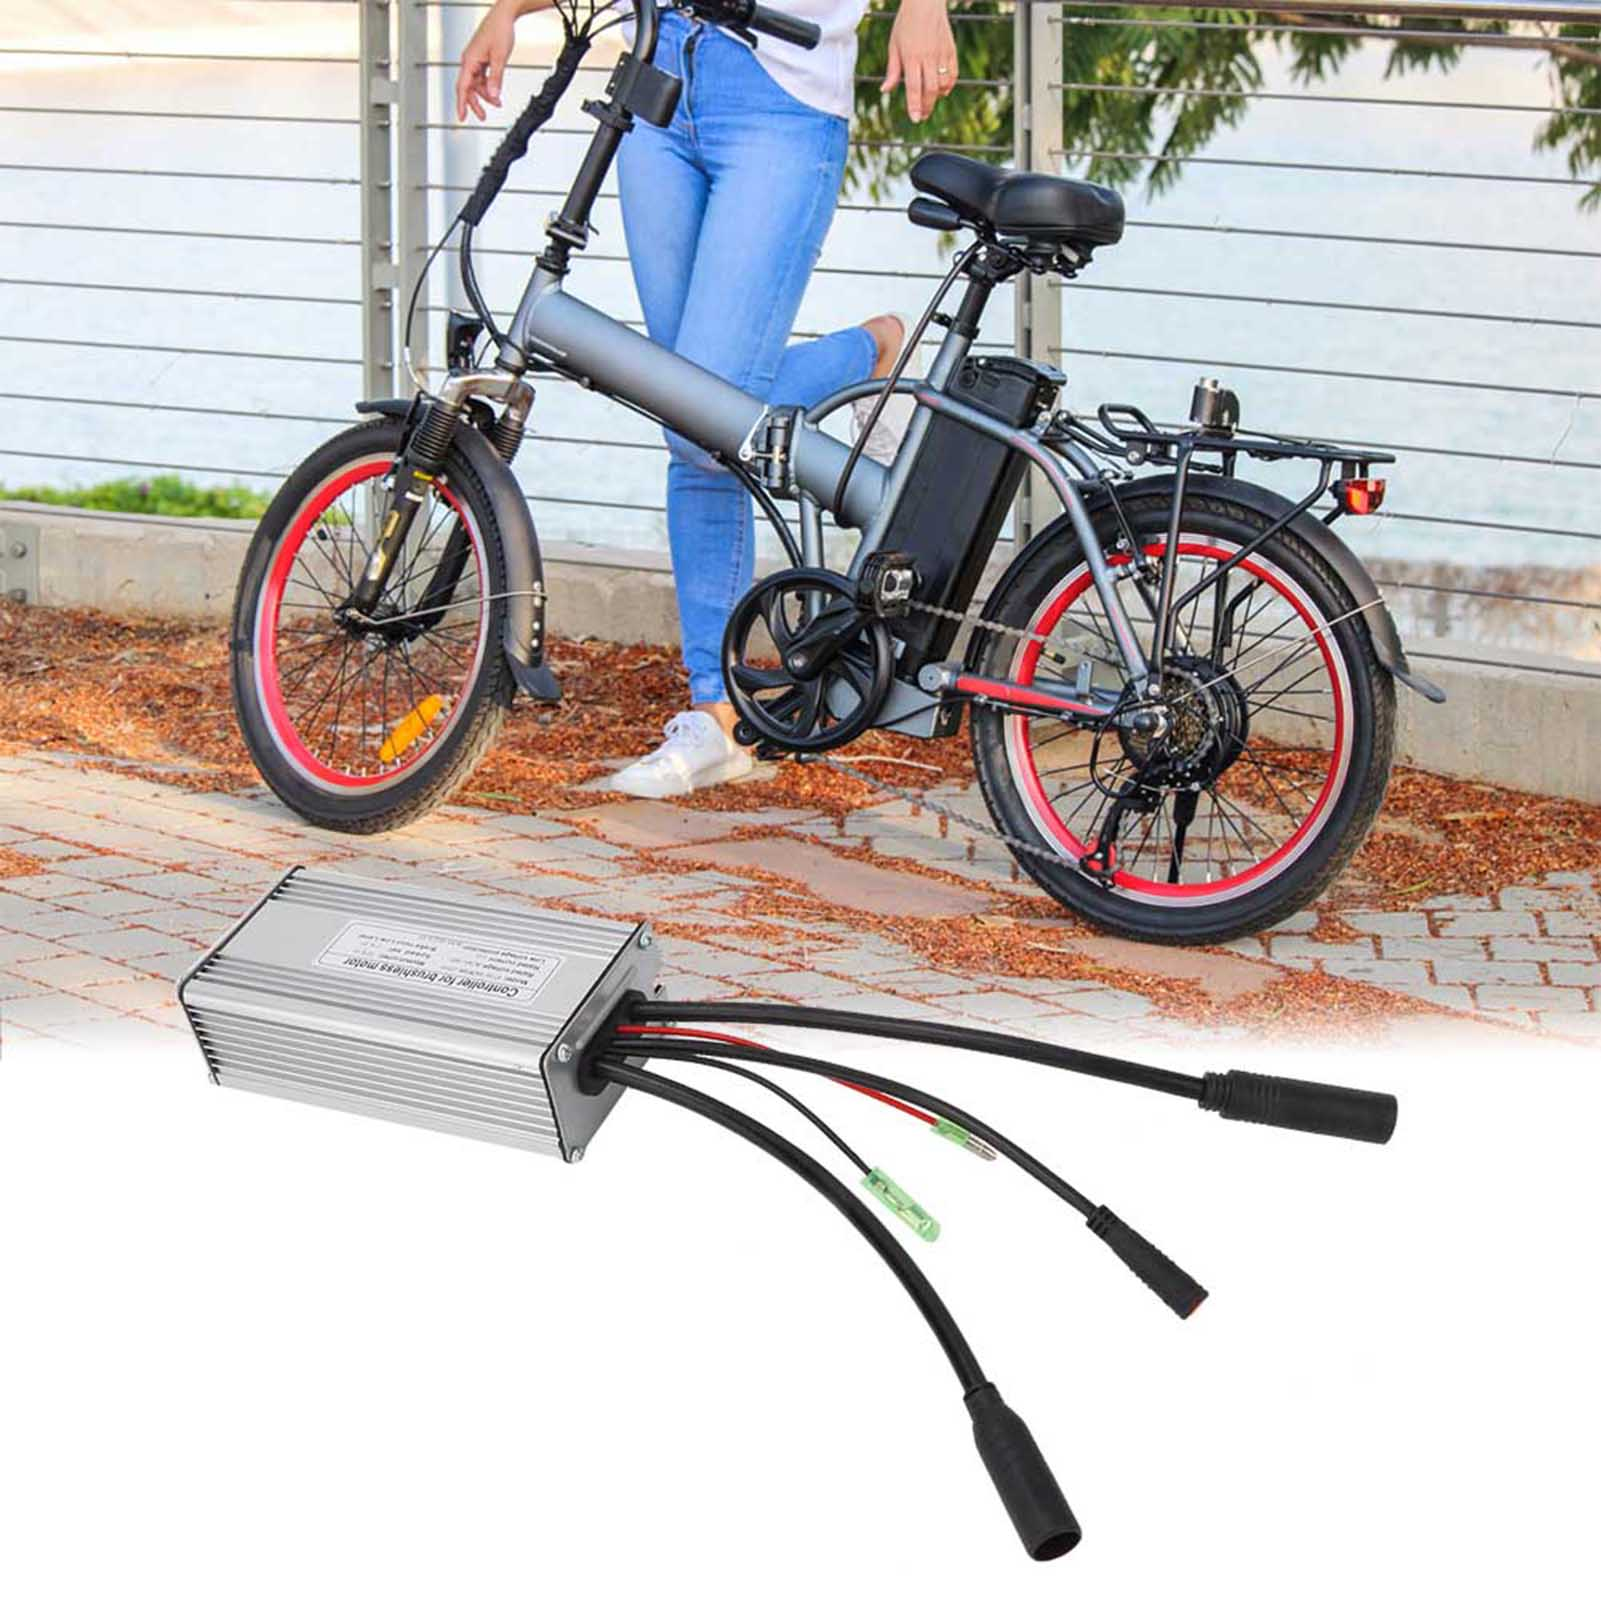 24V-36V-48V-Electric-Bicycle-Bike-Scooter-Brushless-Motor-Speed-Controller-Kit thumbnail 24